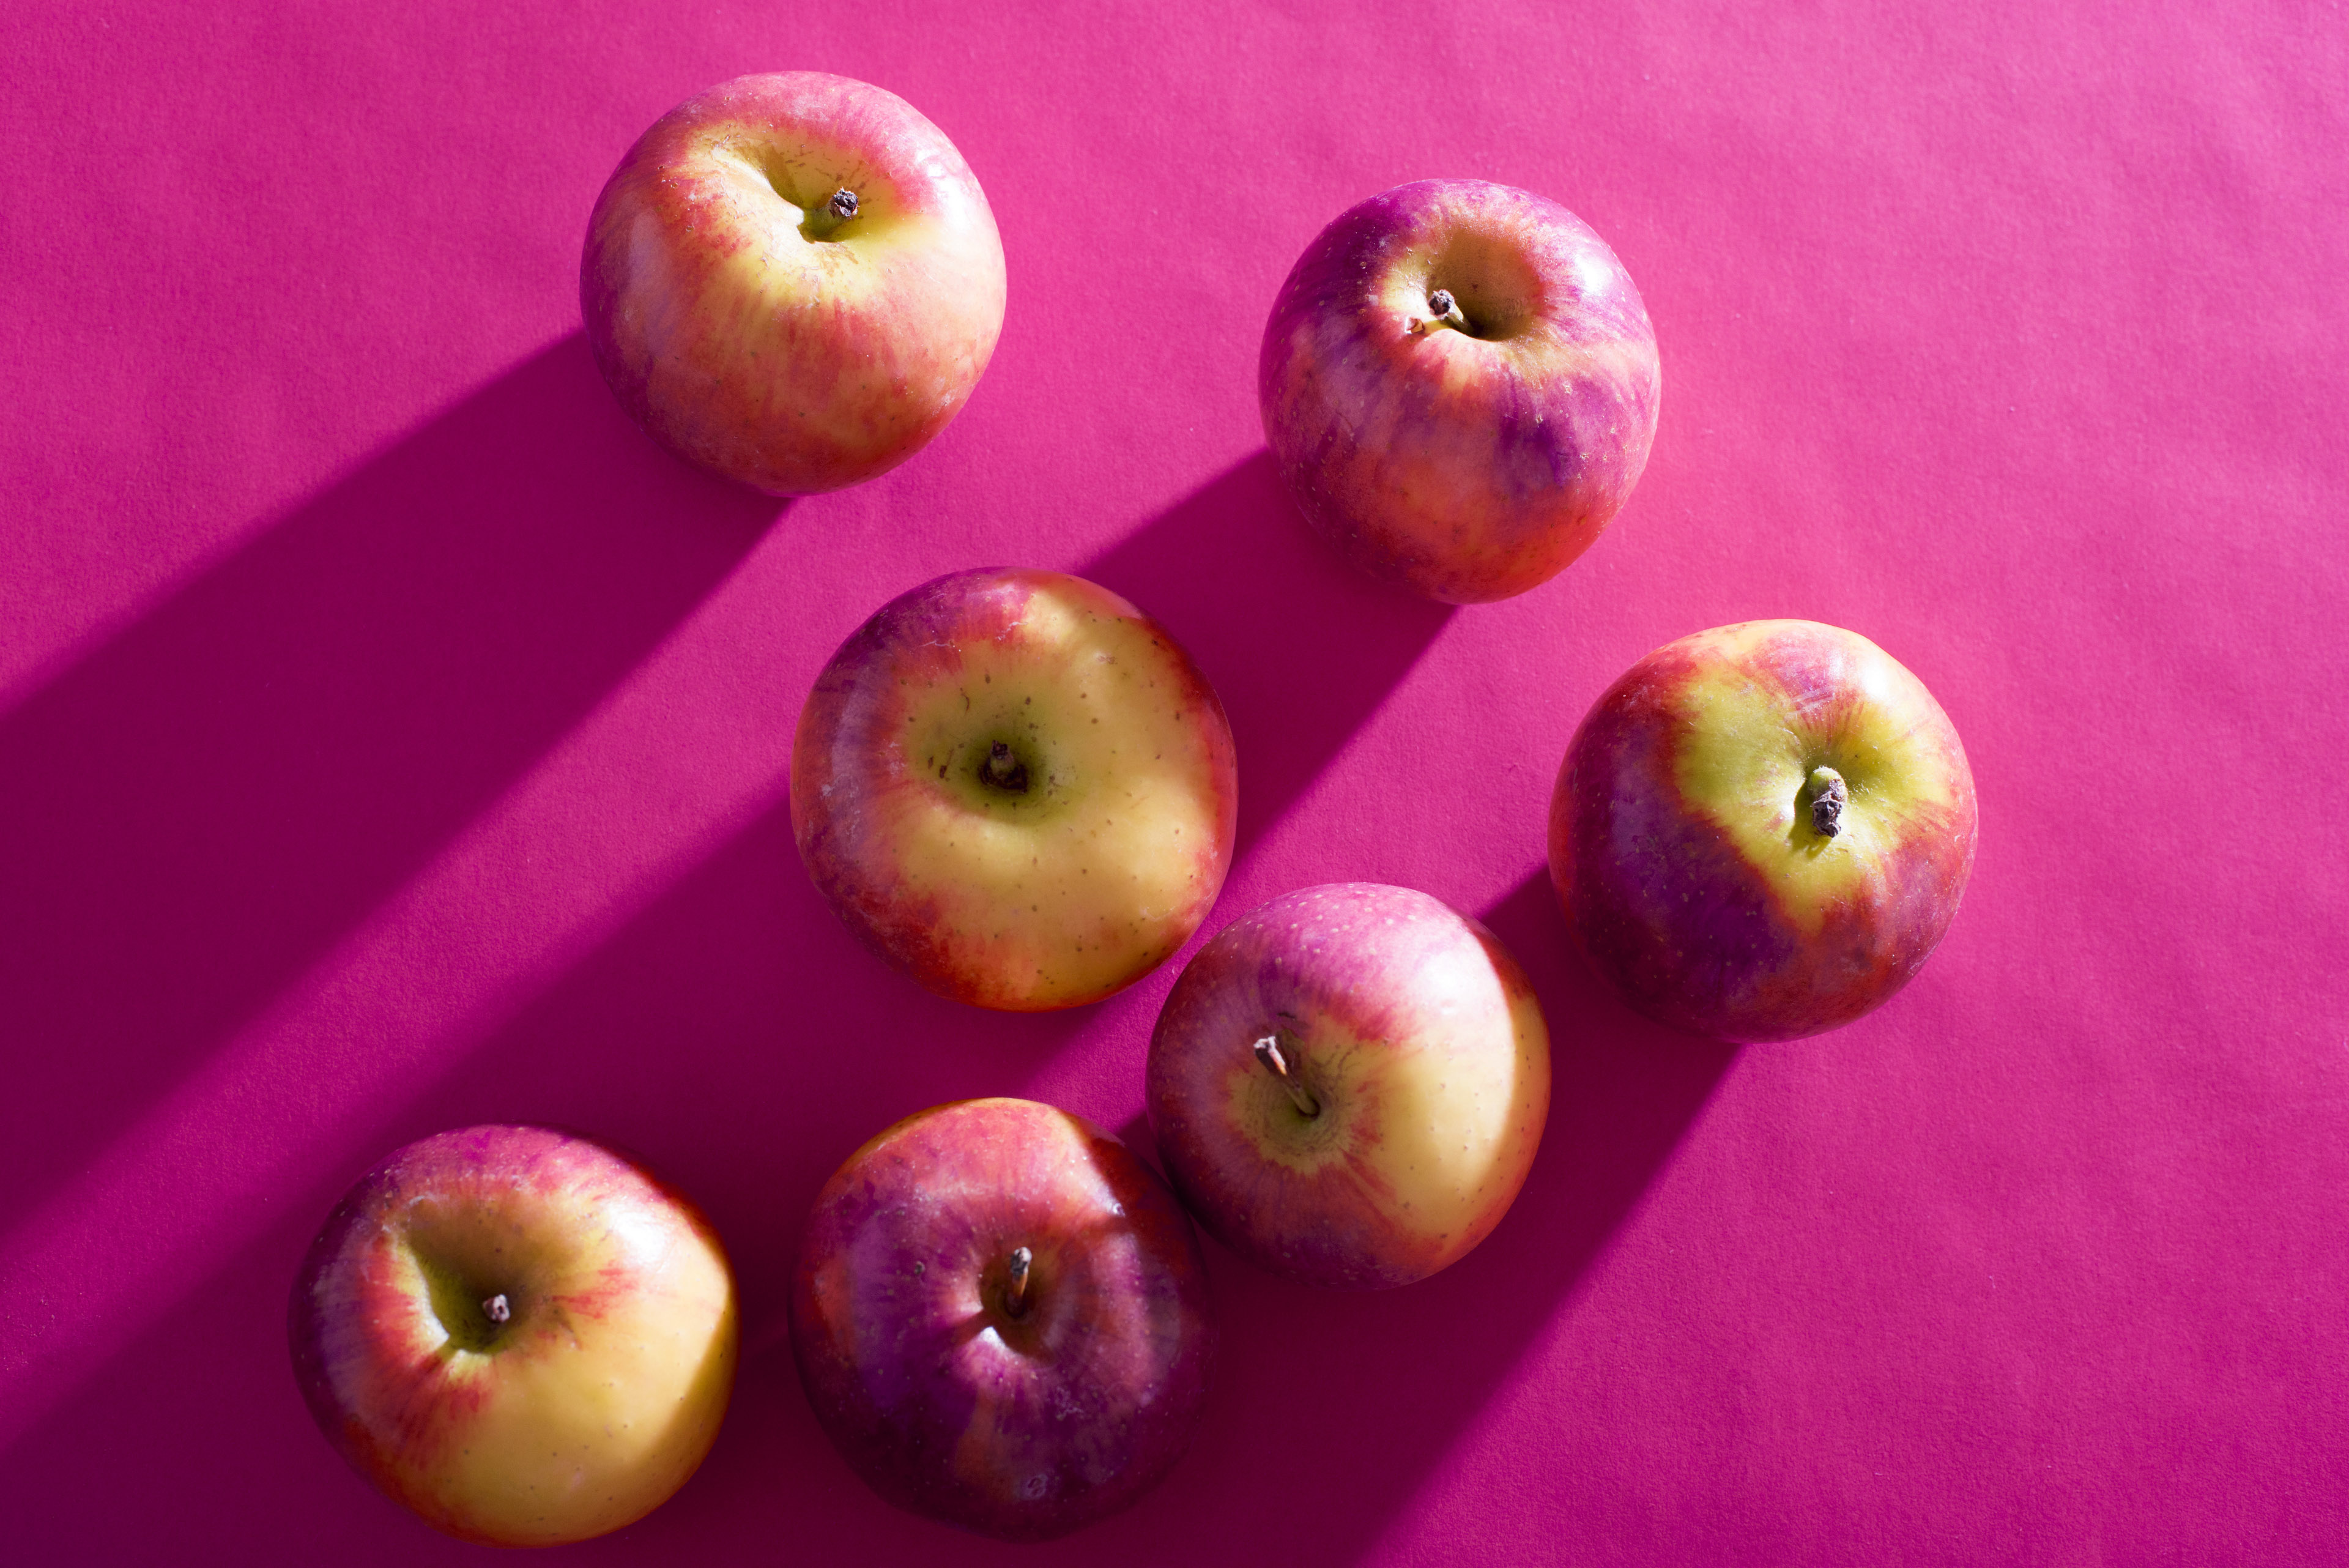 Seven fresh apples lying on purple background